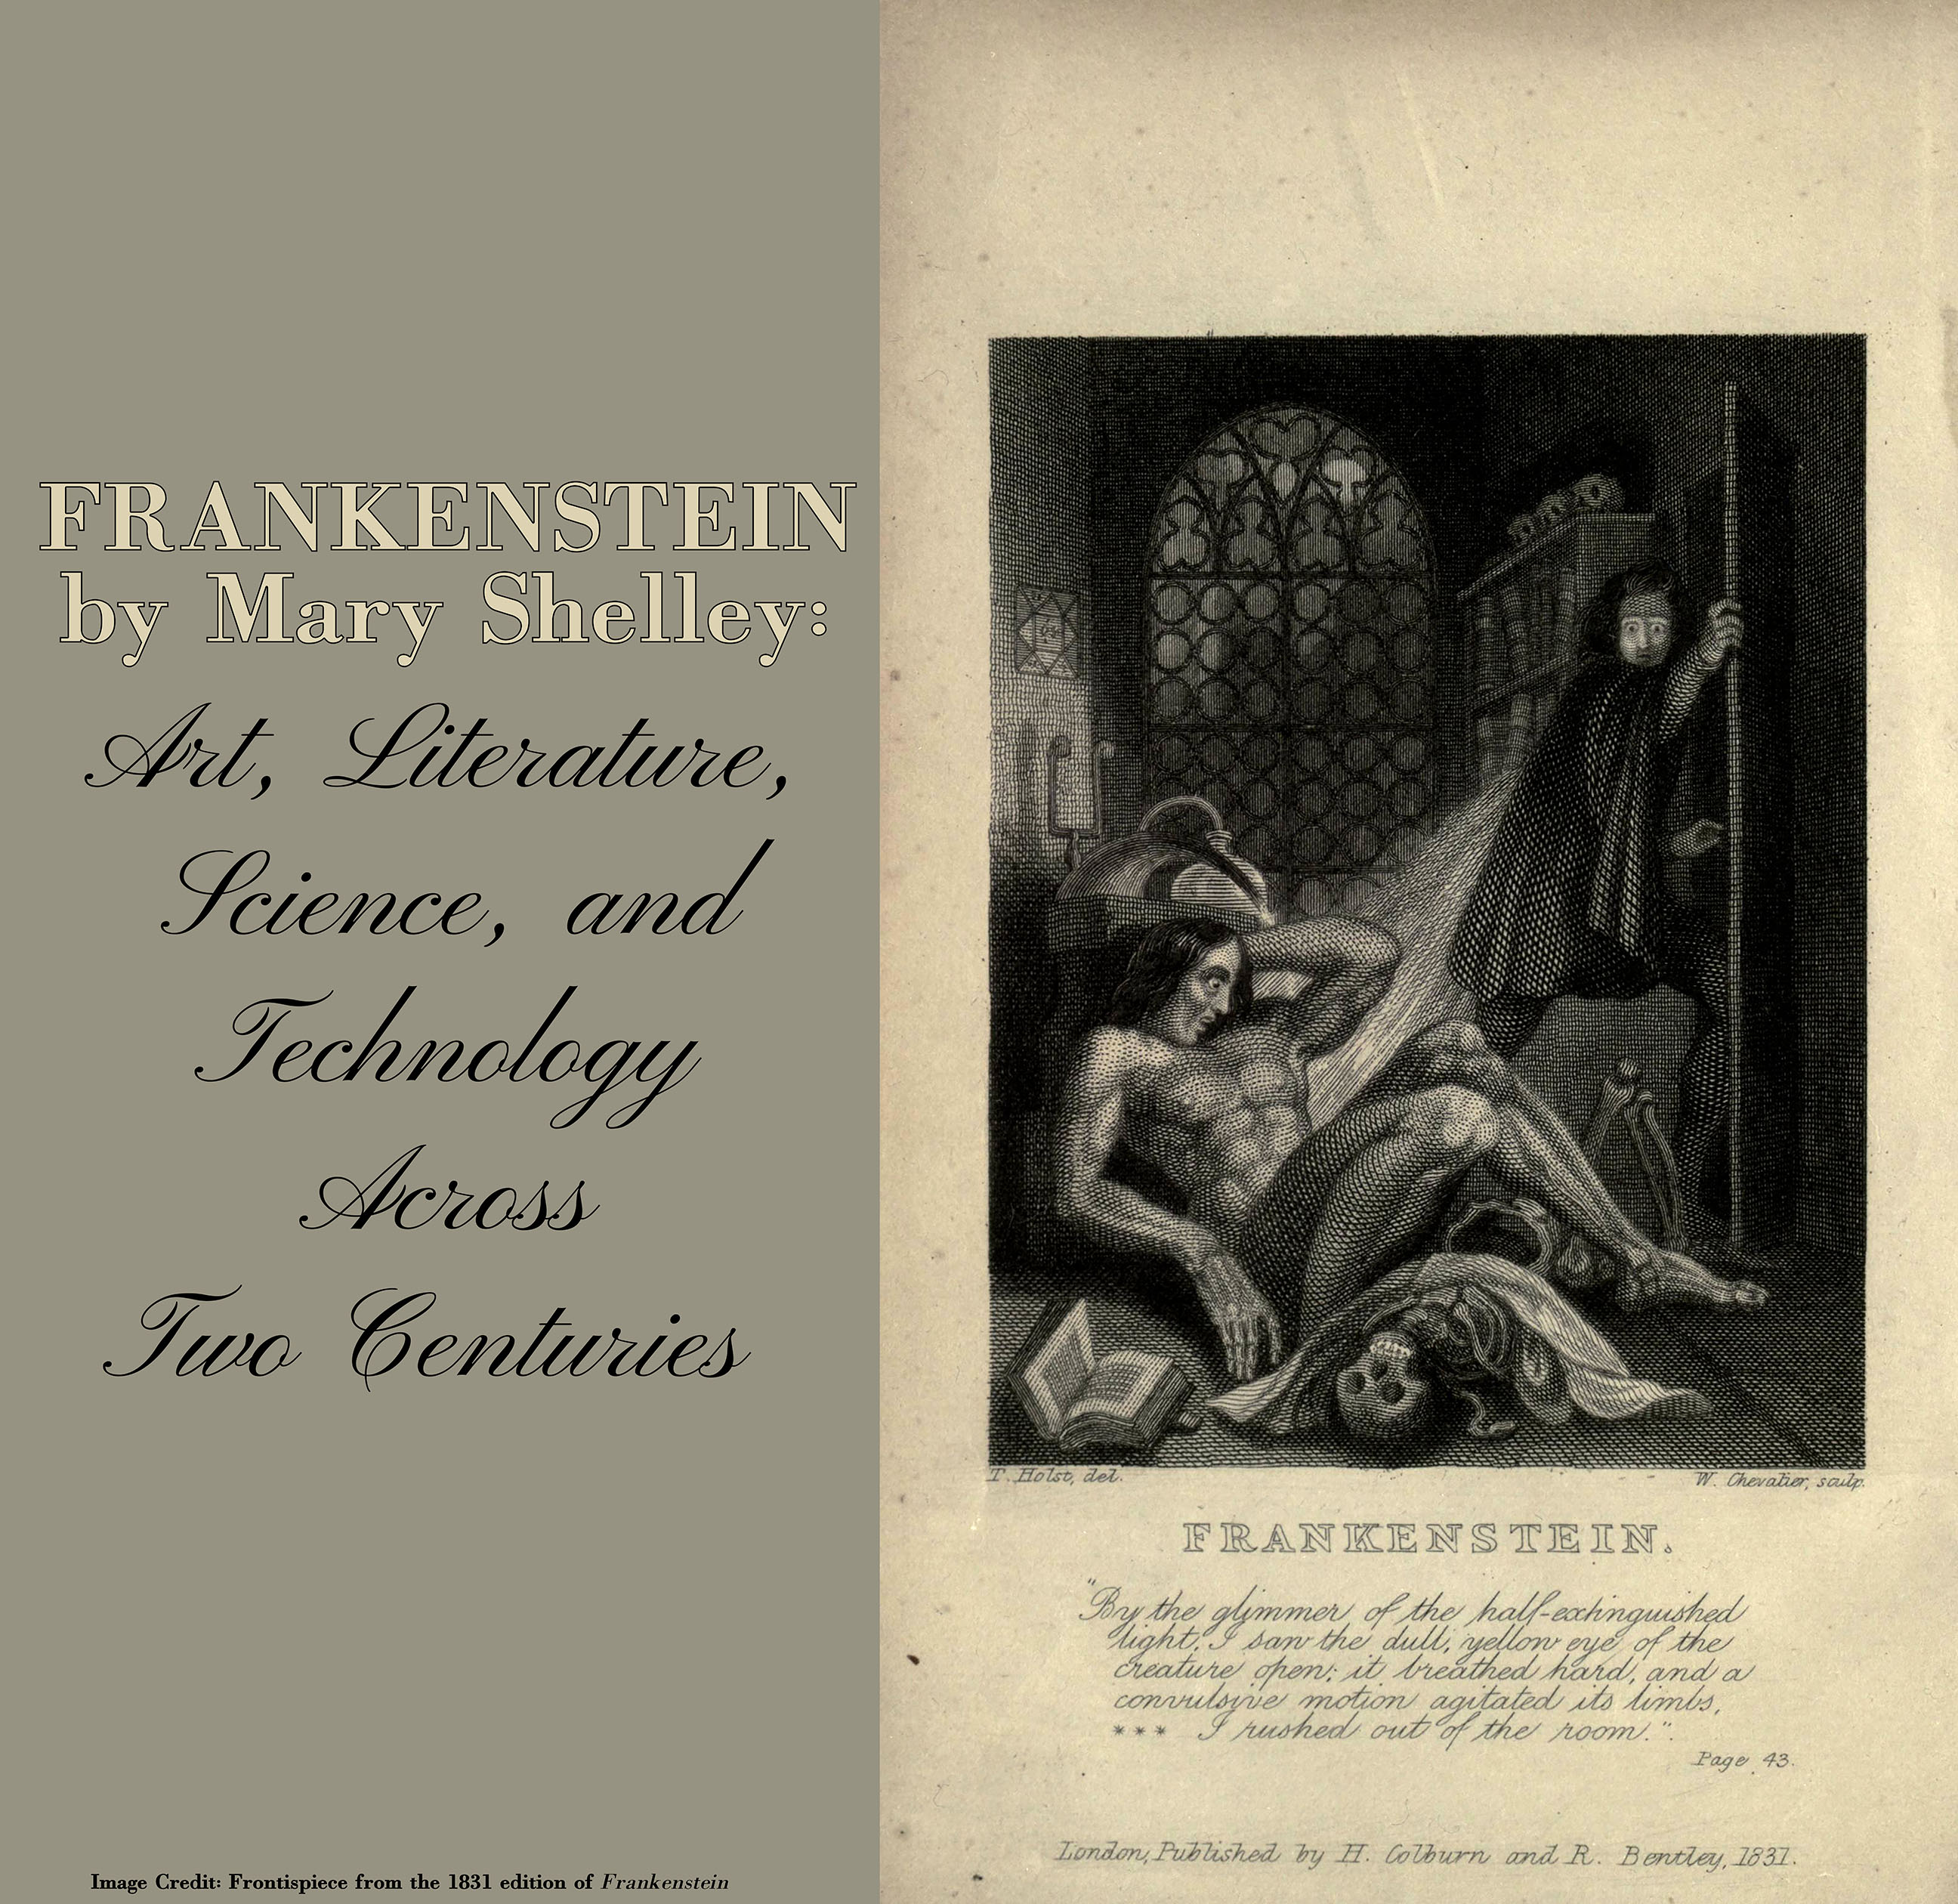 a literary analysis of the monster in frankenstein by mary shelley Mini-literary analysis on frankenstein by mary shelley 1818 human beings are all born innocent however, the activities and experiences of life dictate whether we maintain this innocence or lose it.